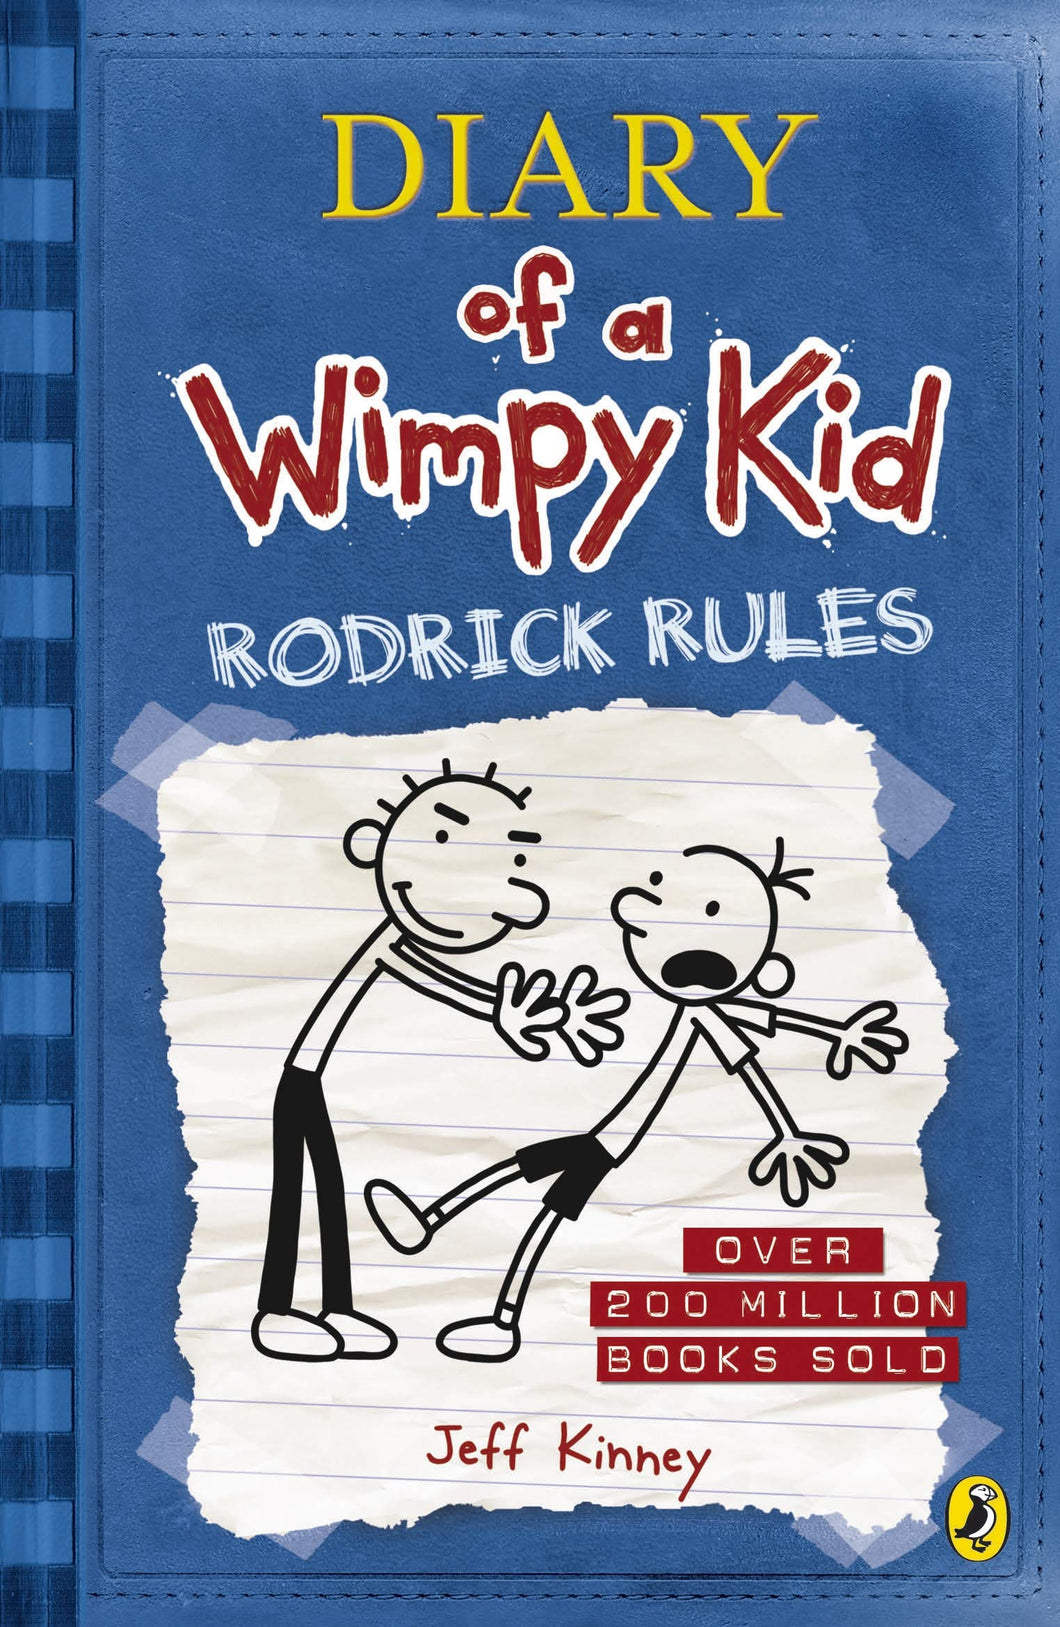 Diary of a Wimpy Kid: Roderick Rules Book 2